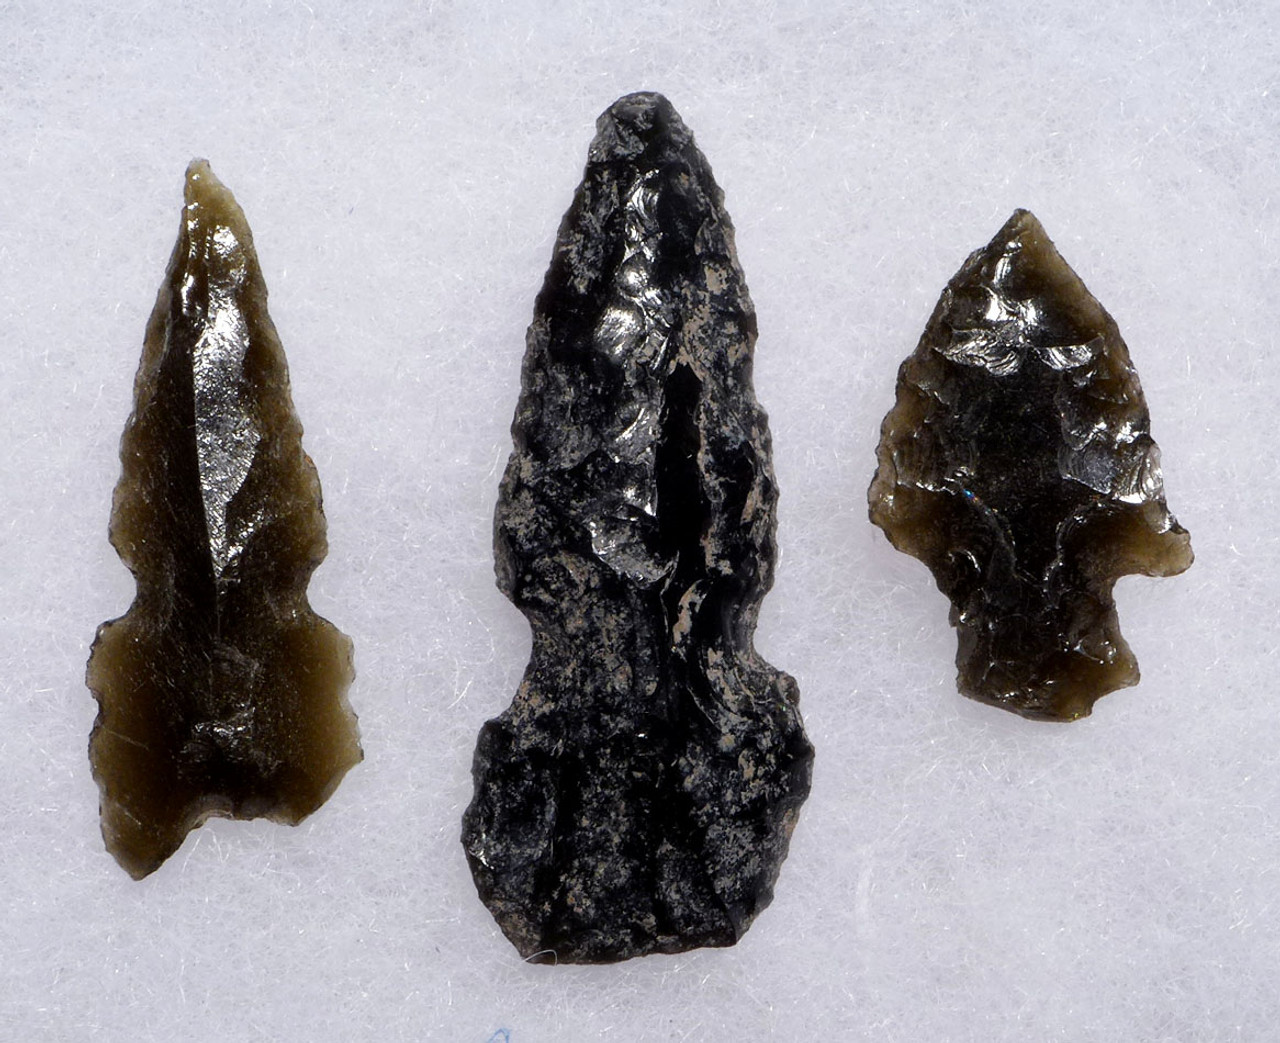 THREE RARE COMPLETE PRE-COLUMBIAN OBSIDIAN ARROWHEADS FROM THE HEFLIN COLLECTION *PC291